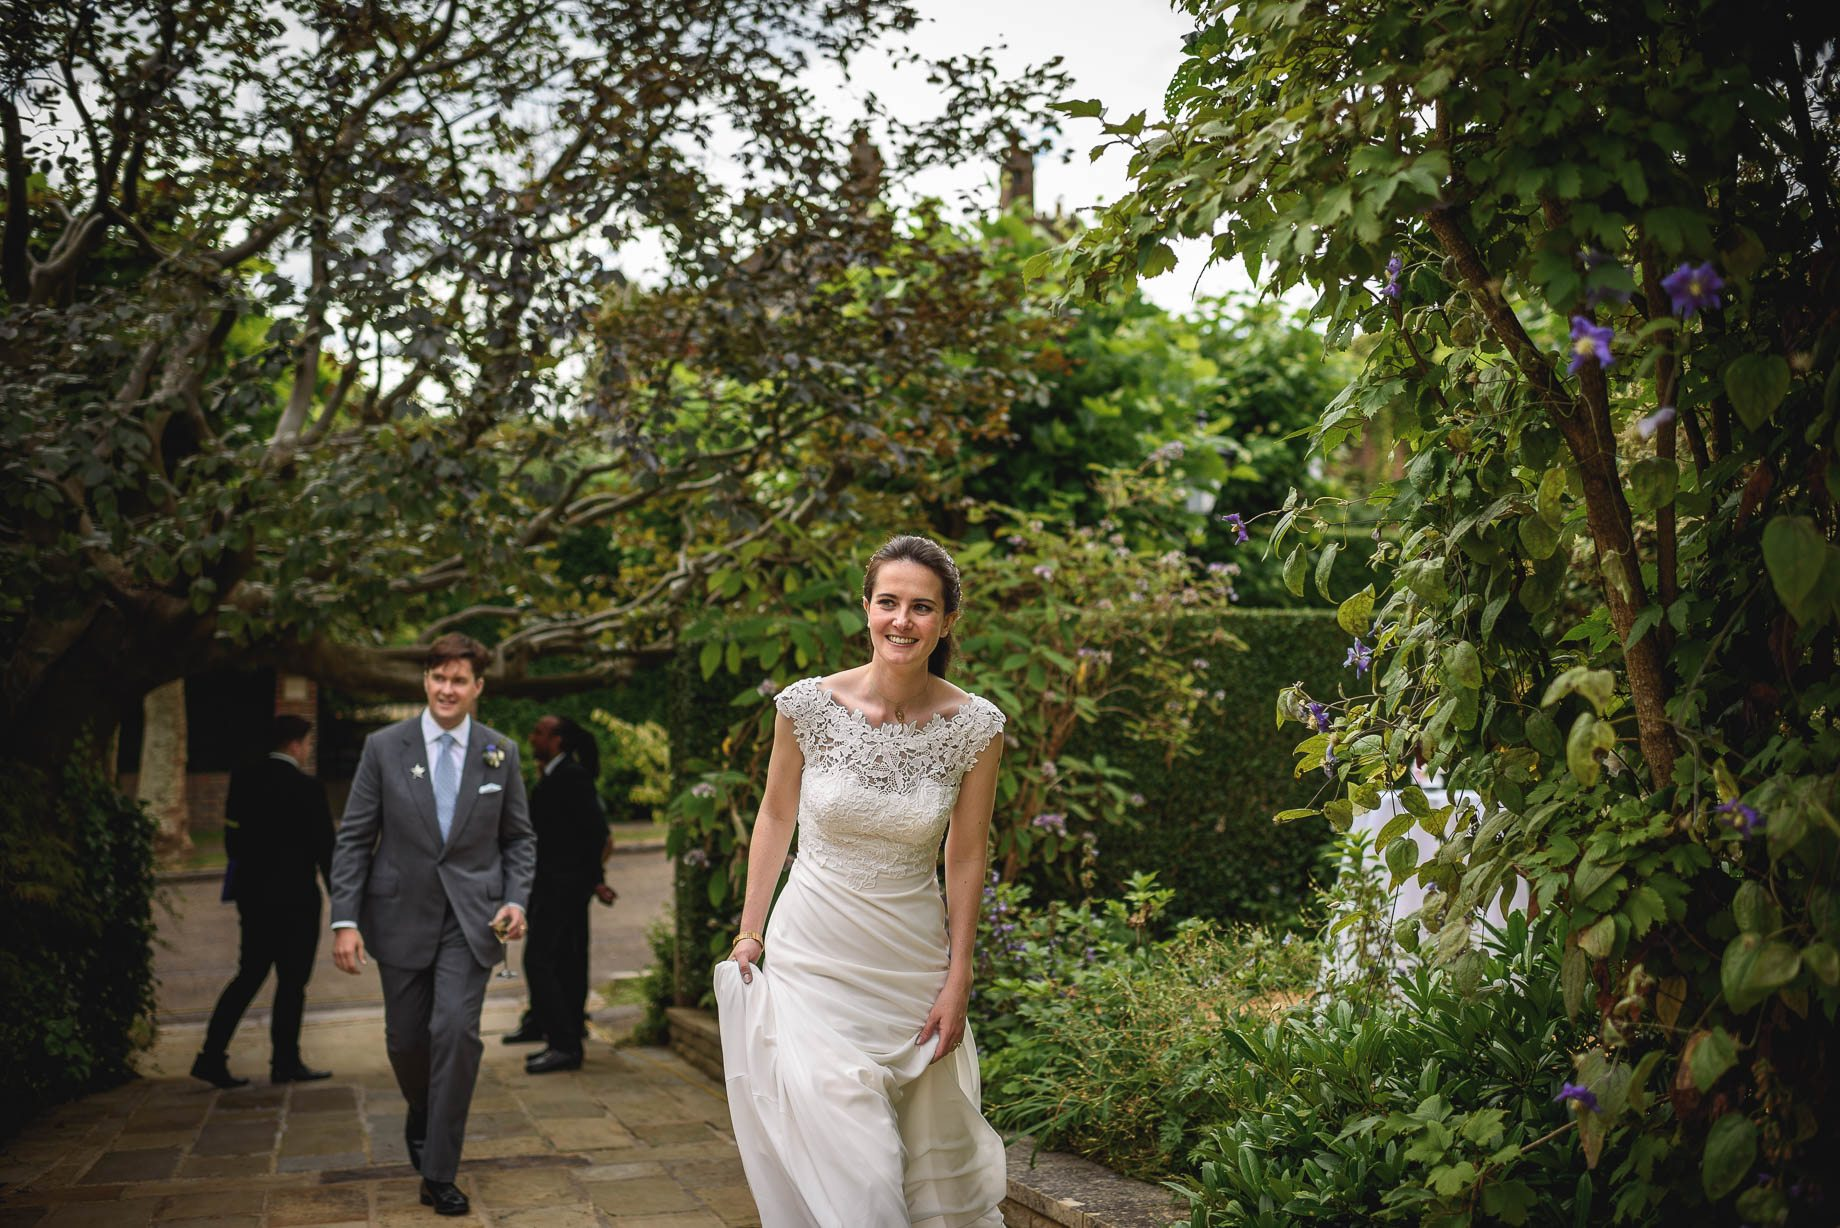 London wedding photography - Claire and JW - Guy Collier Photography (109 of 153)